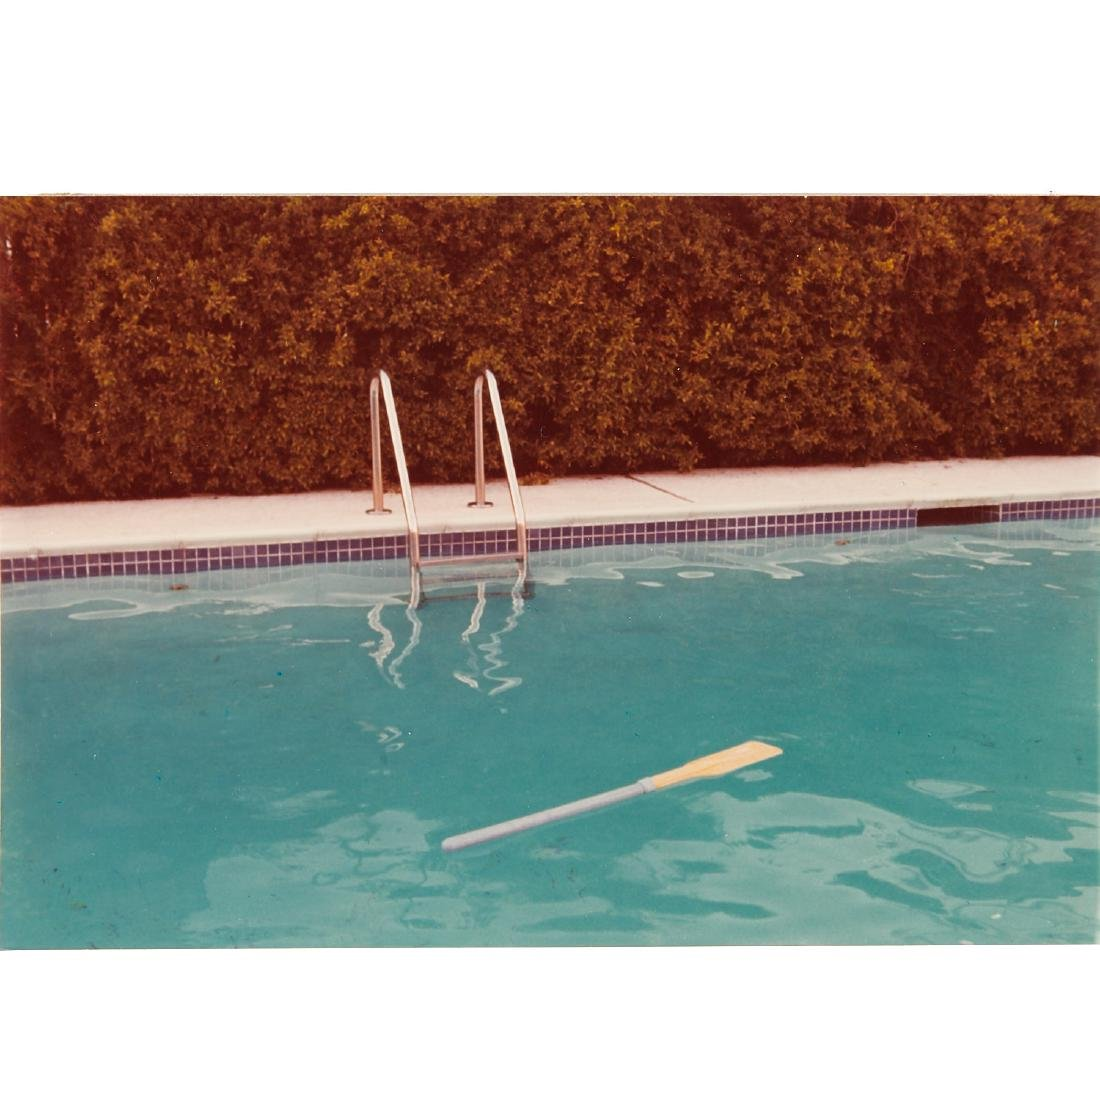 David Hockney, photograph